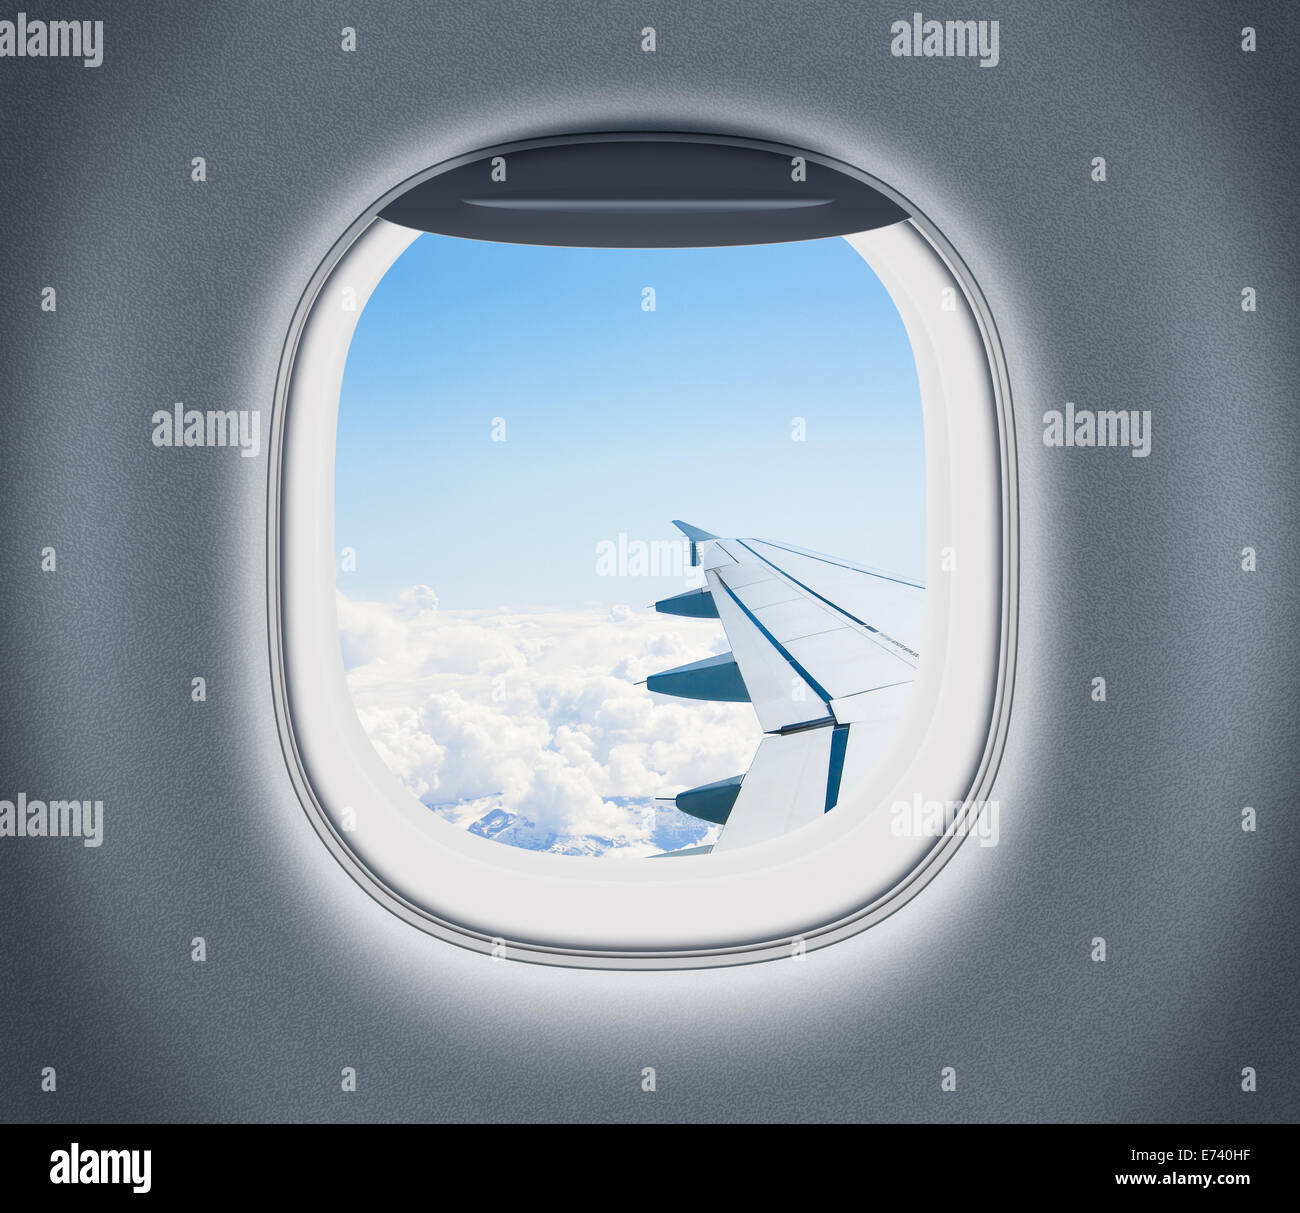 Airplane or aeroplane window with wing and cloudy sky behind. Air travel and flight concept. - Stock Image